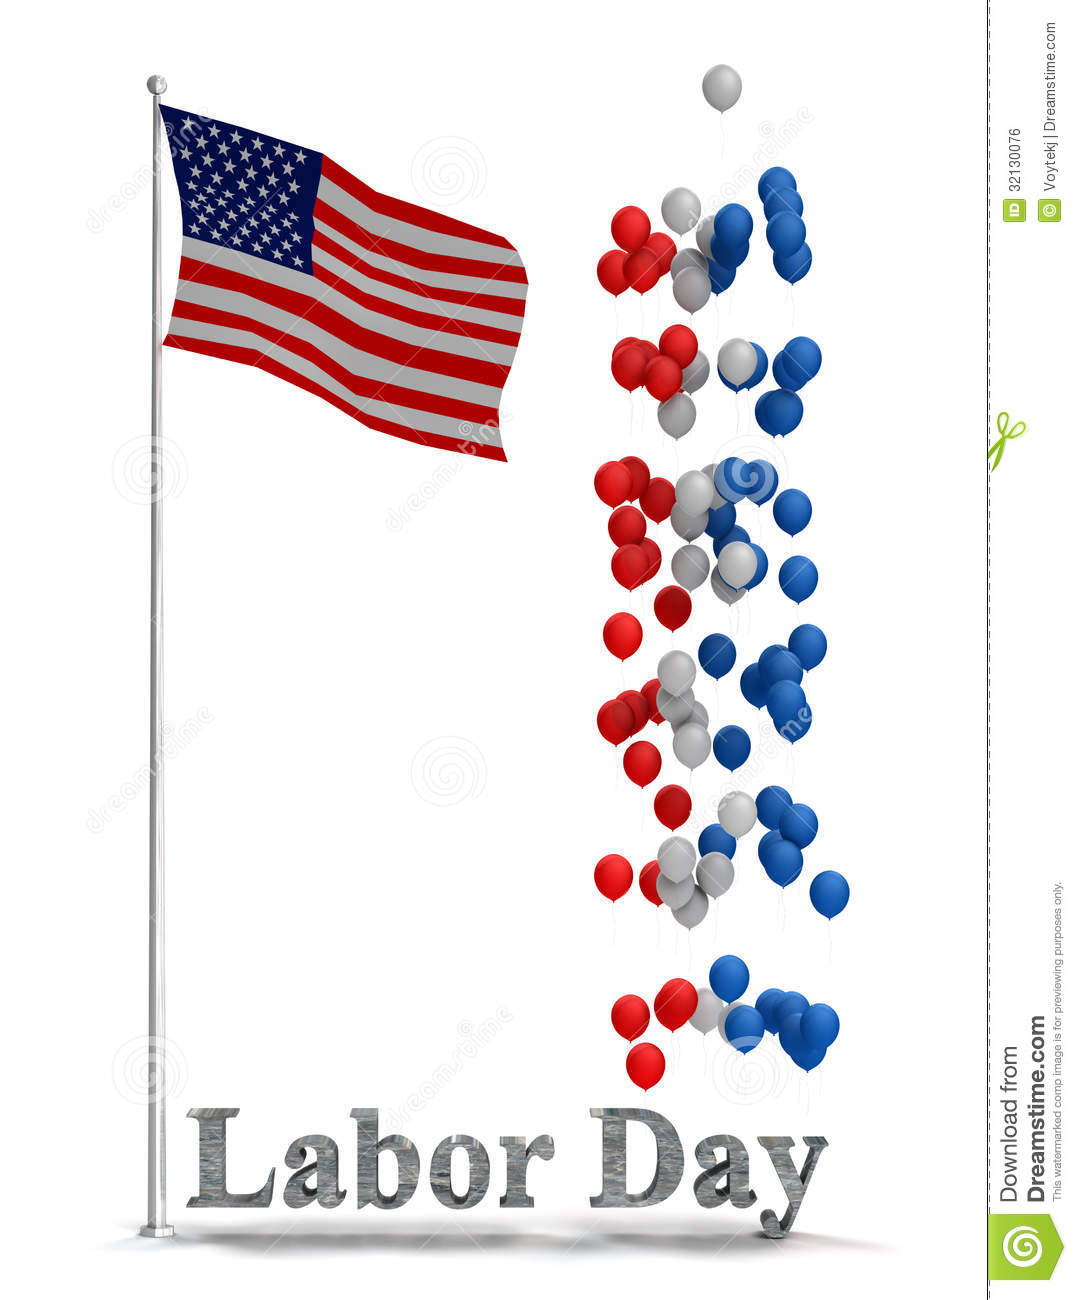 labor day flyer graphic stock illustration  illustration